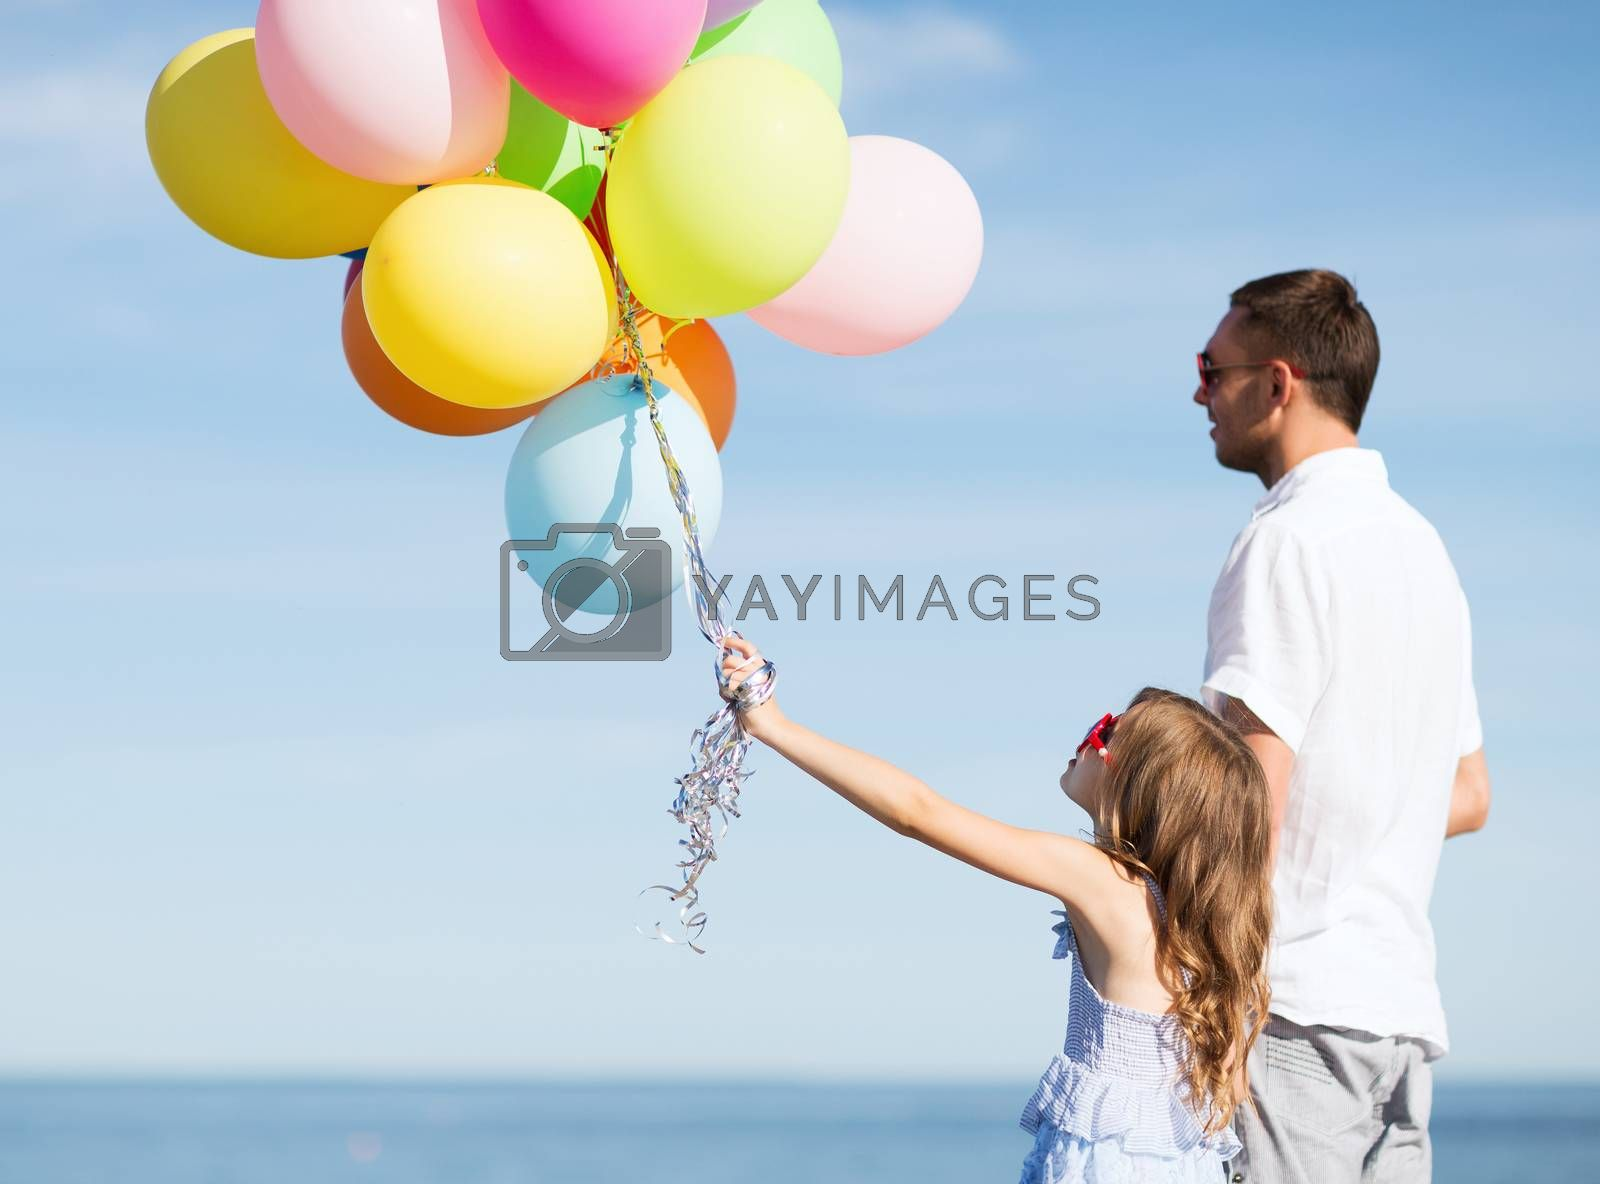 summer holidays, celebration, children and family concept - father and daughter with colorful balloons